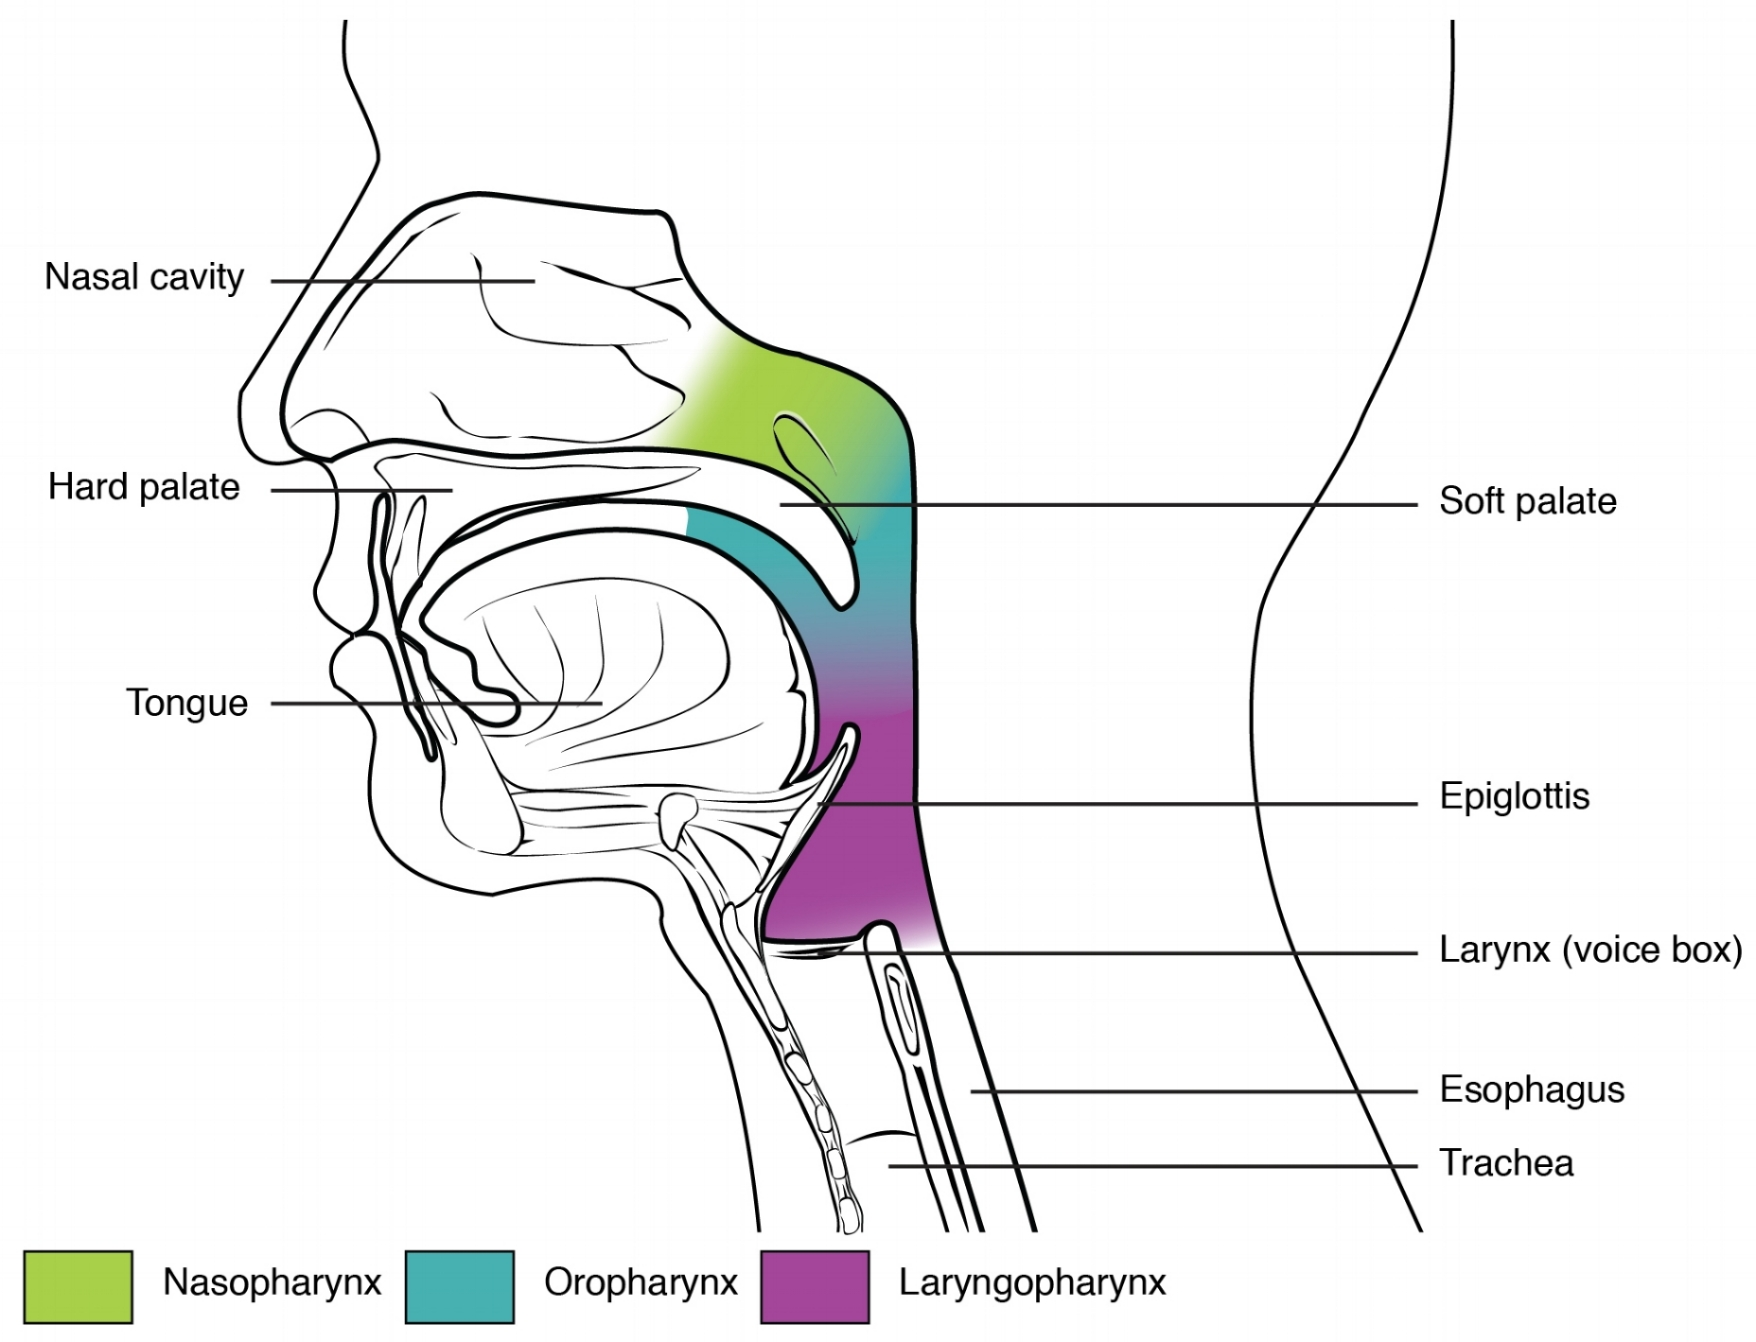 Anatomy & Physiology, Connexions Web site.  http://cnx.org/content/col11496/1.6/ , Jun 19, 2013.